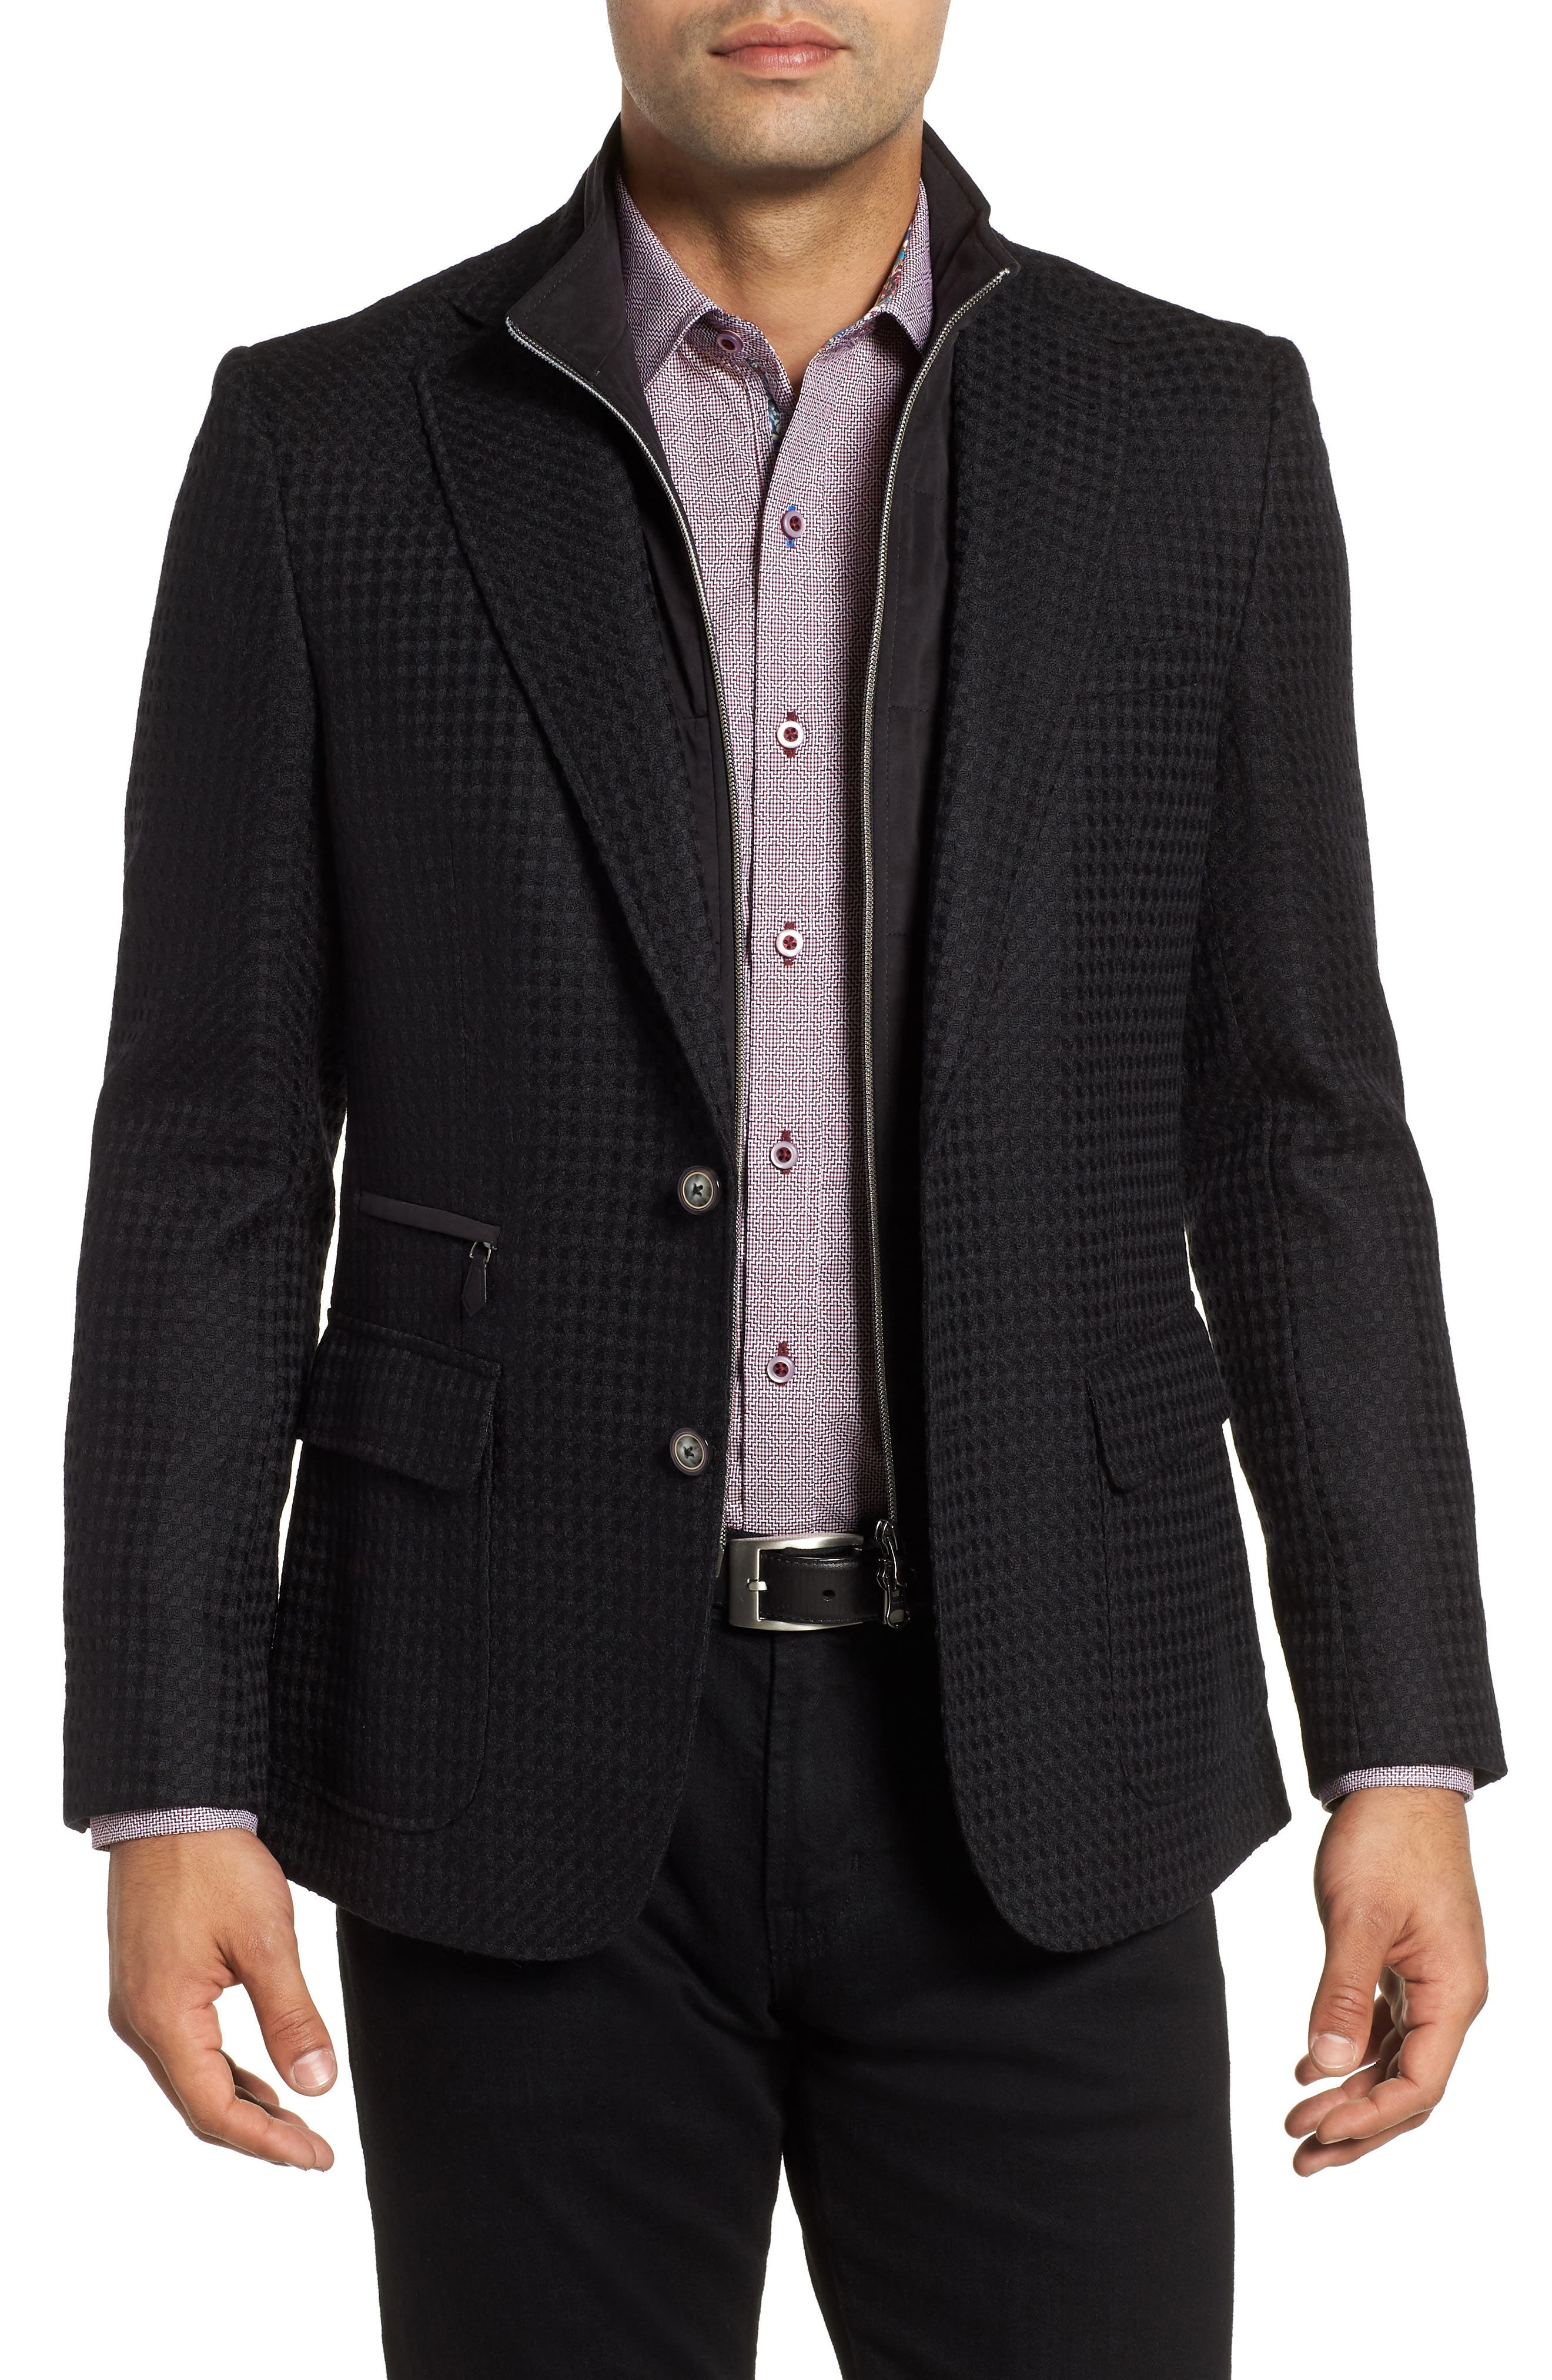 Downhill Tailored Wool Sport Coat,                         Main,                         color, 001